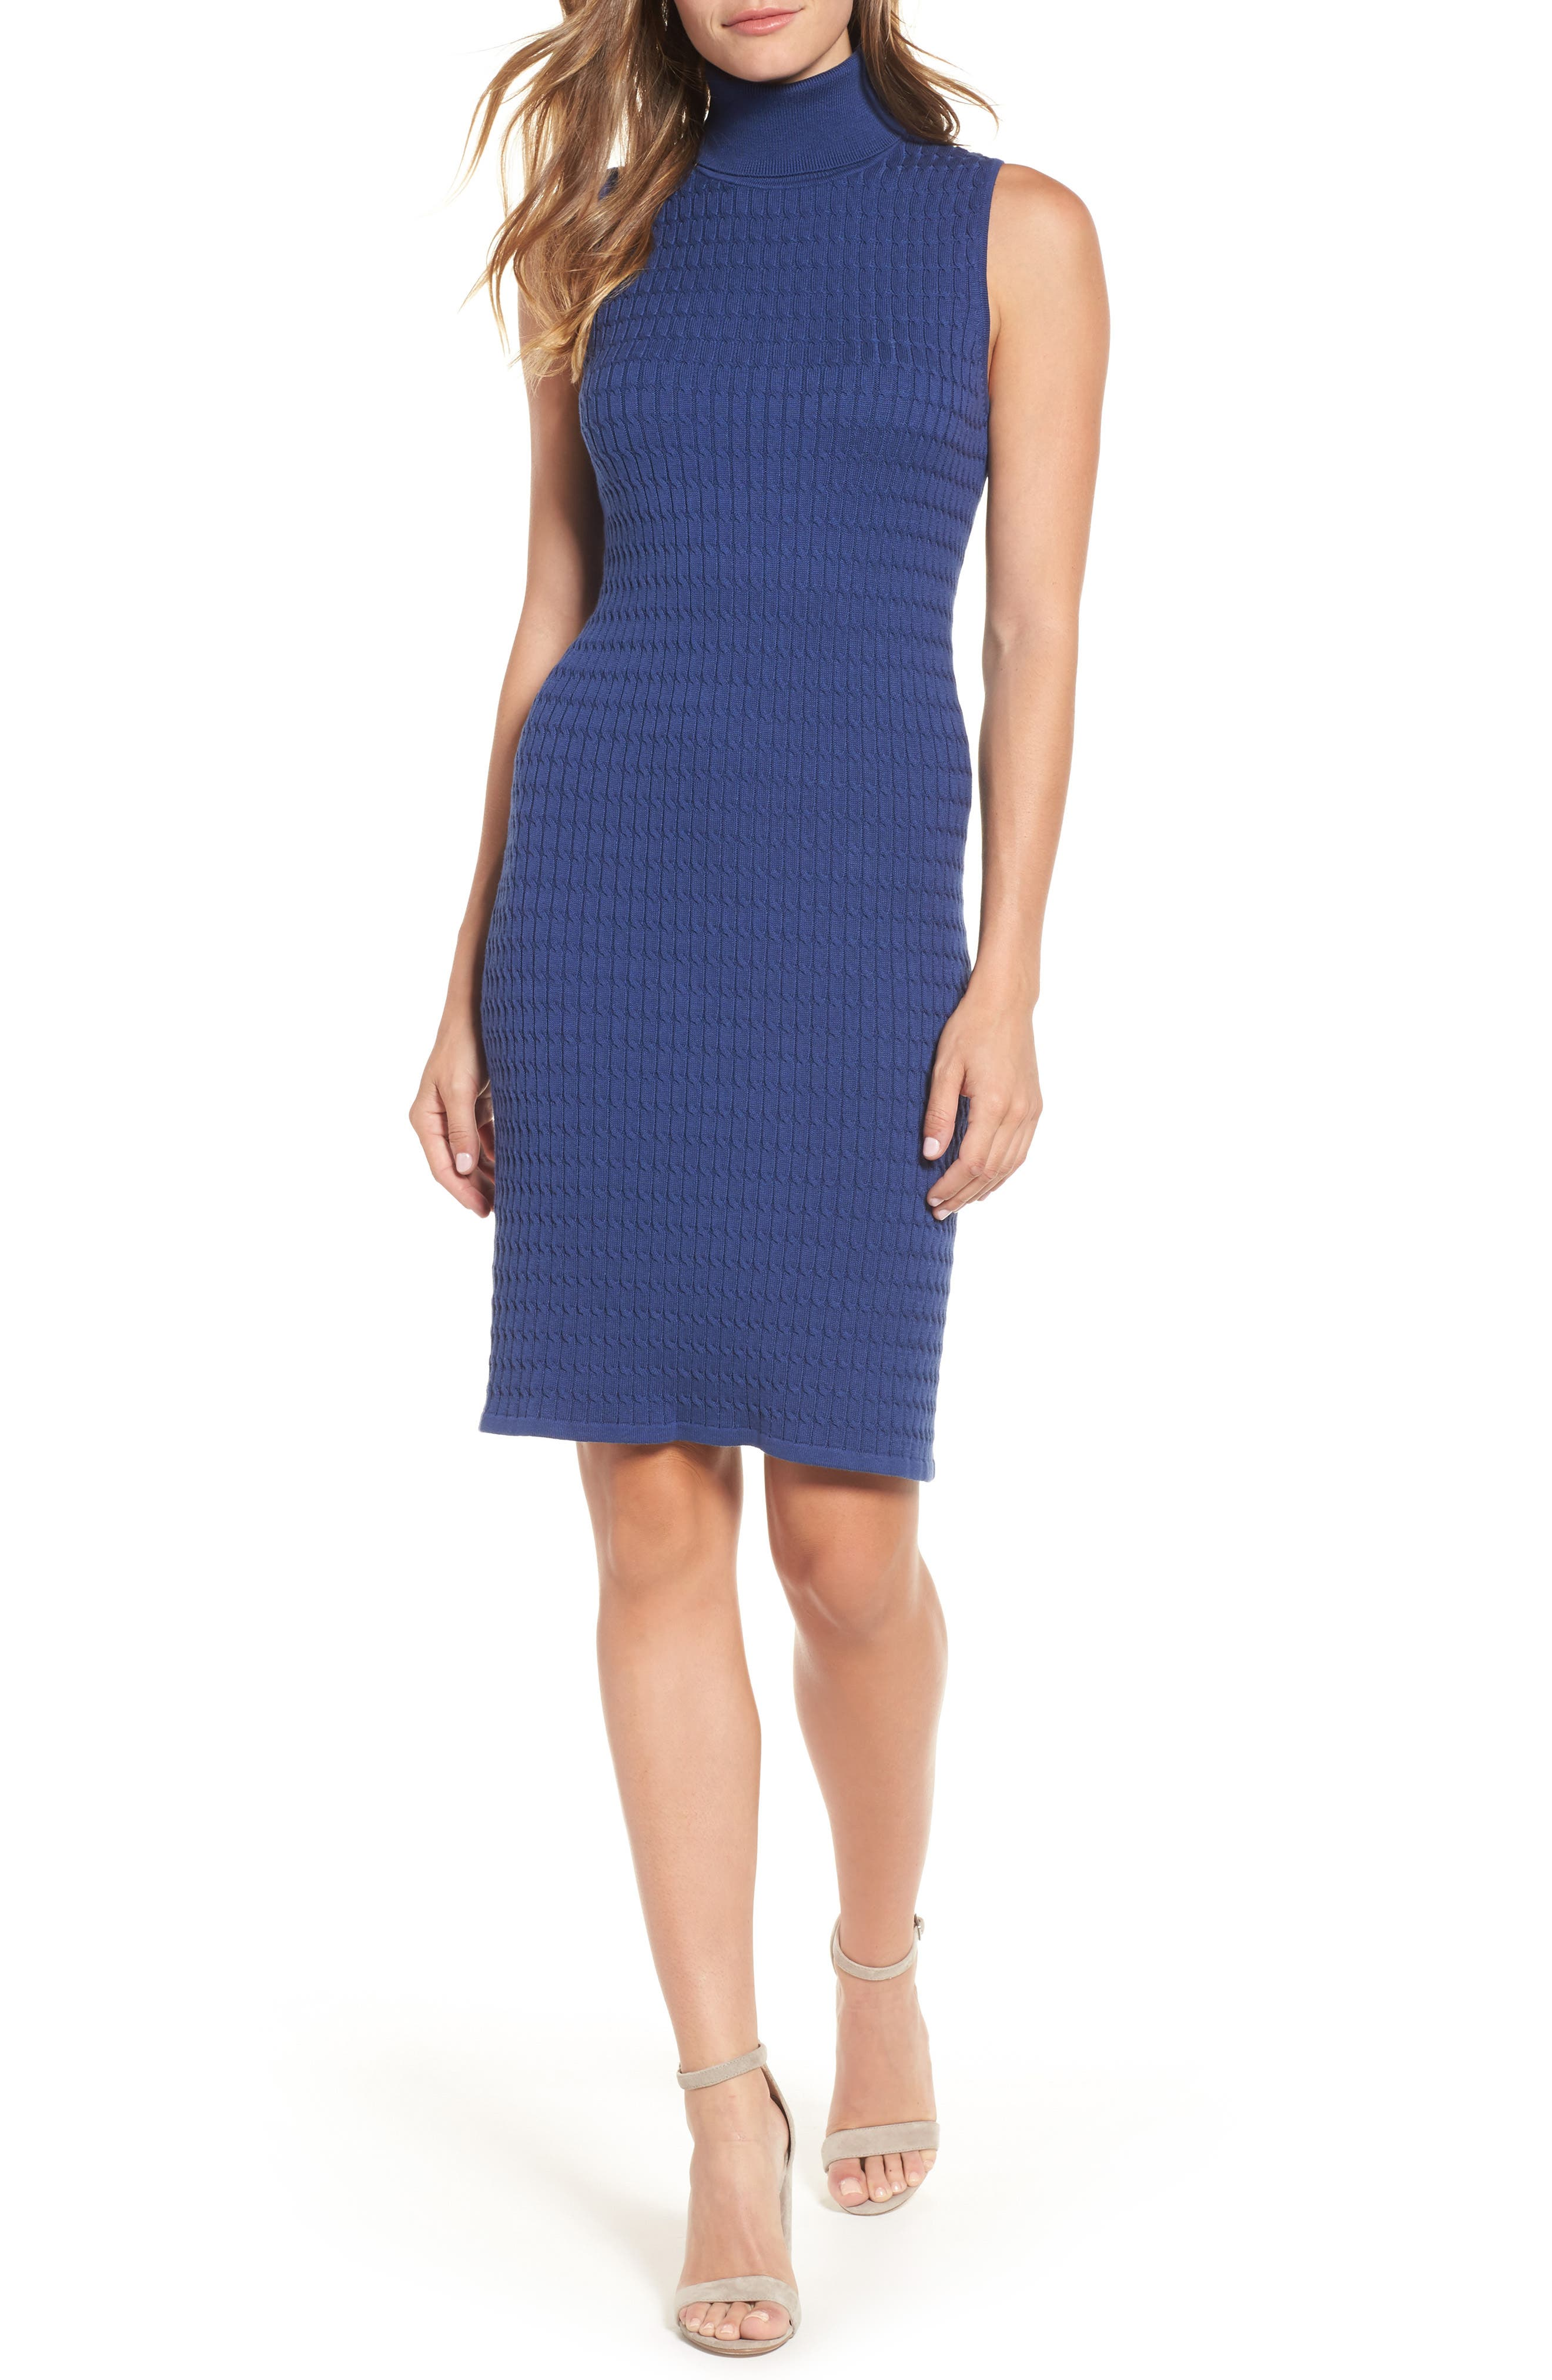 Main Image - Tommy Bahama Sleeveless Turtleneck Dress